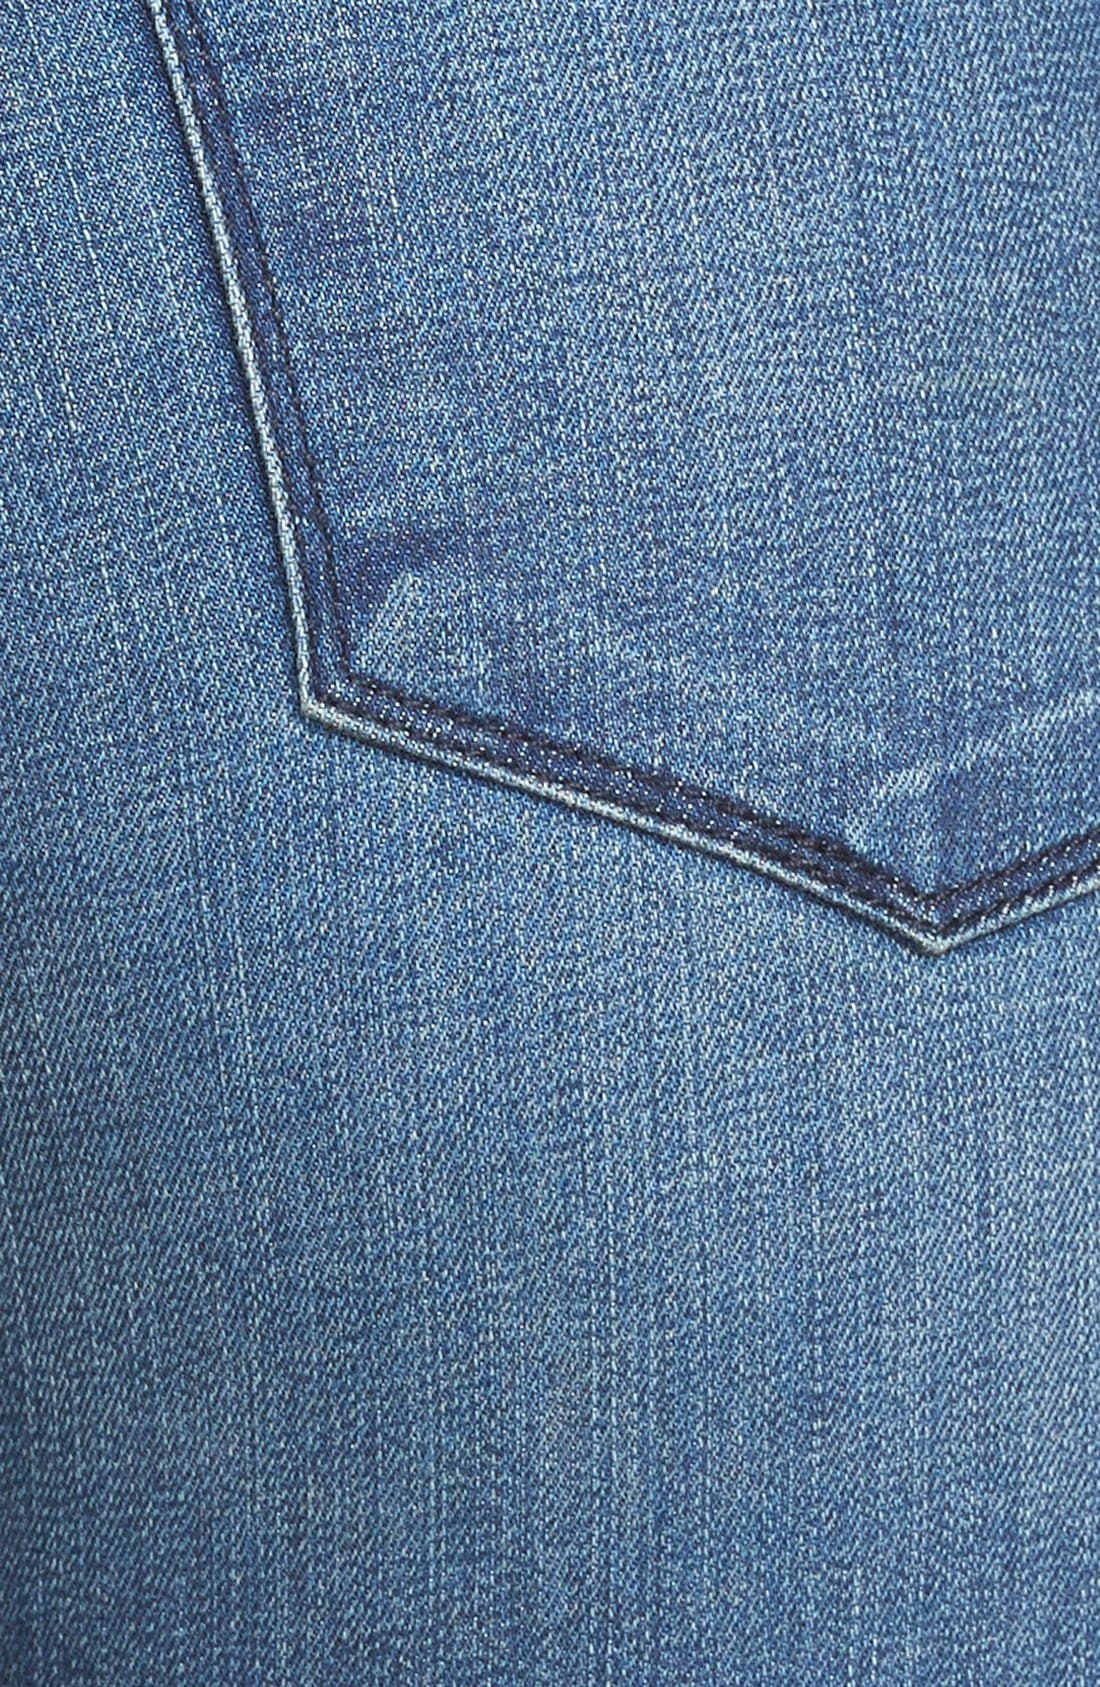 Alternate Image 3  - CJ by Cookie Johnson 'Faith' Stretch Straight Leg Jeans (Dyson) (Online Only)